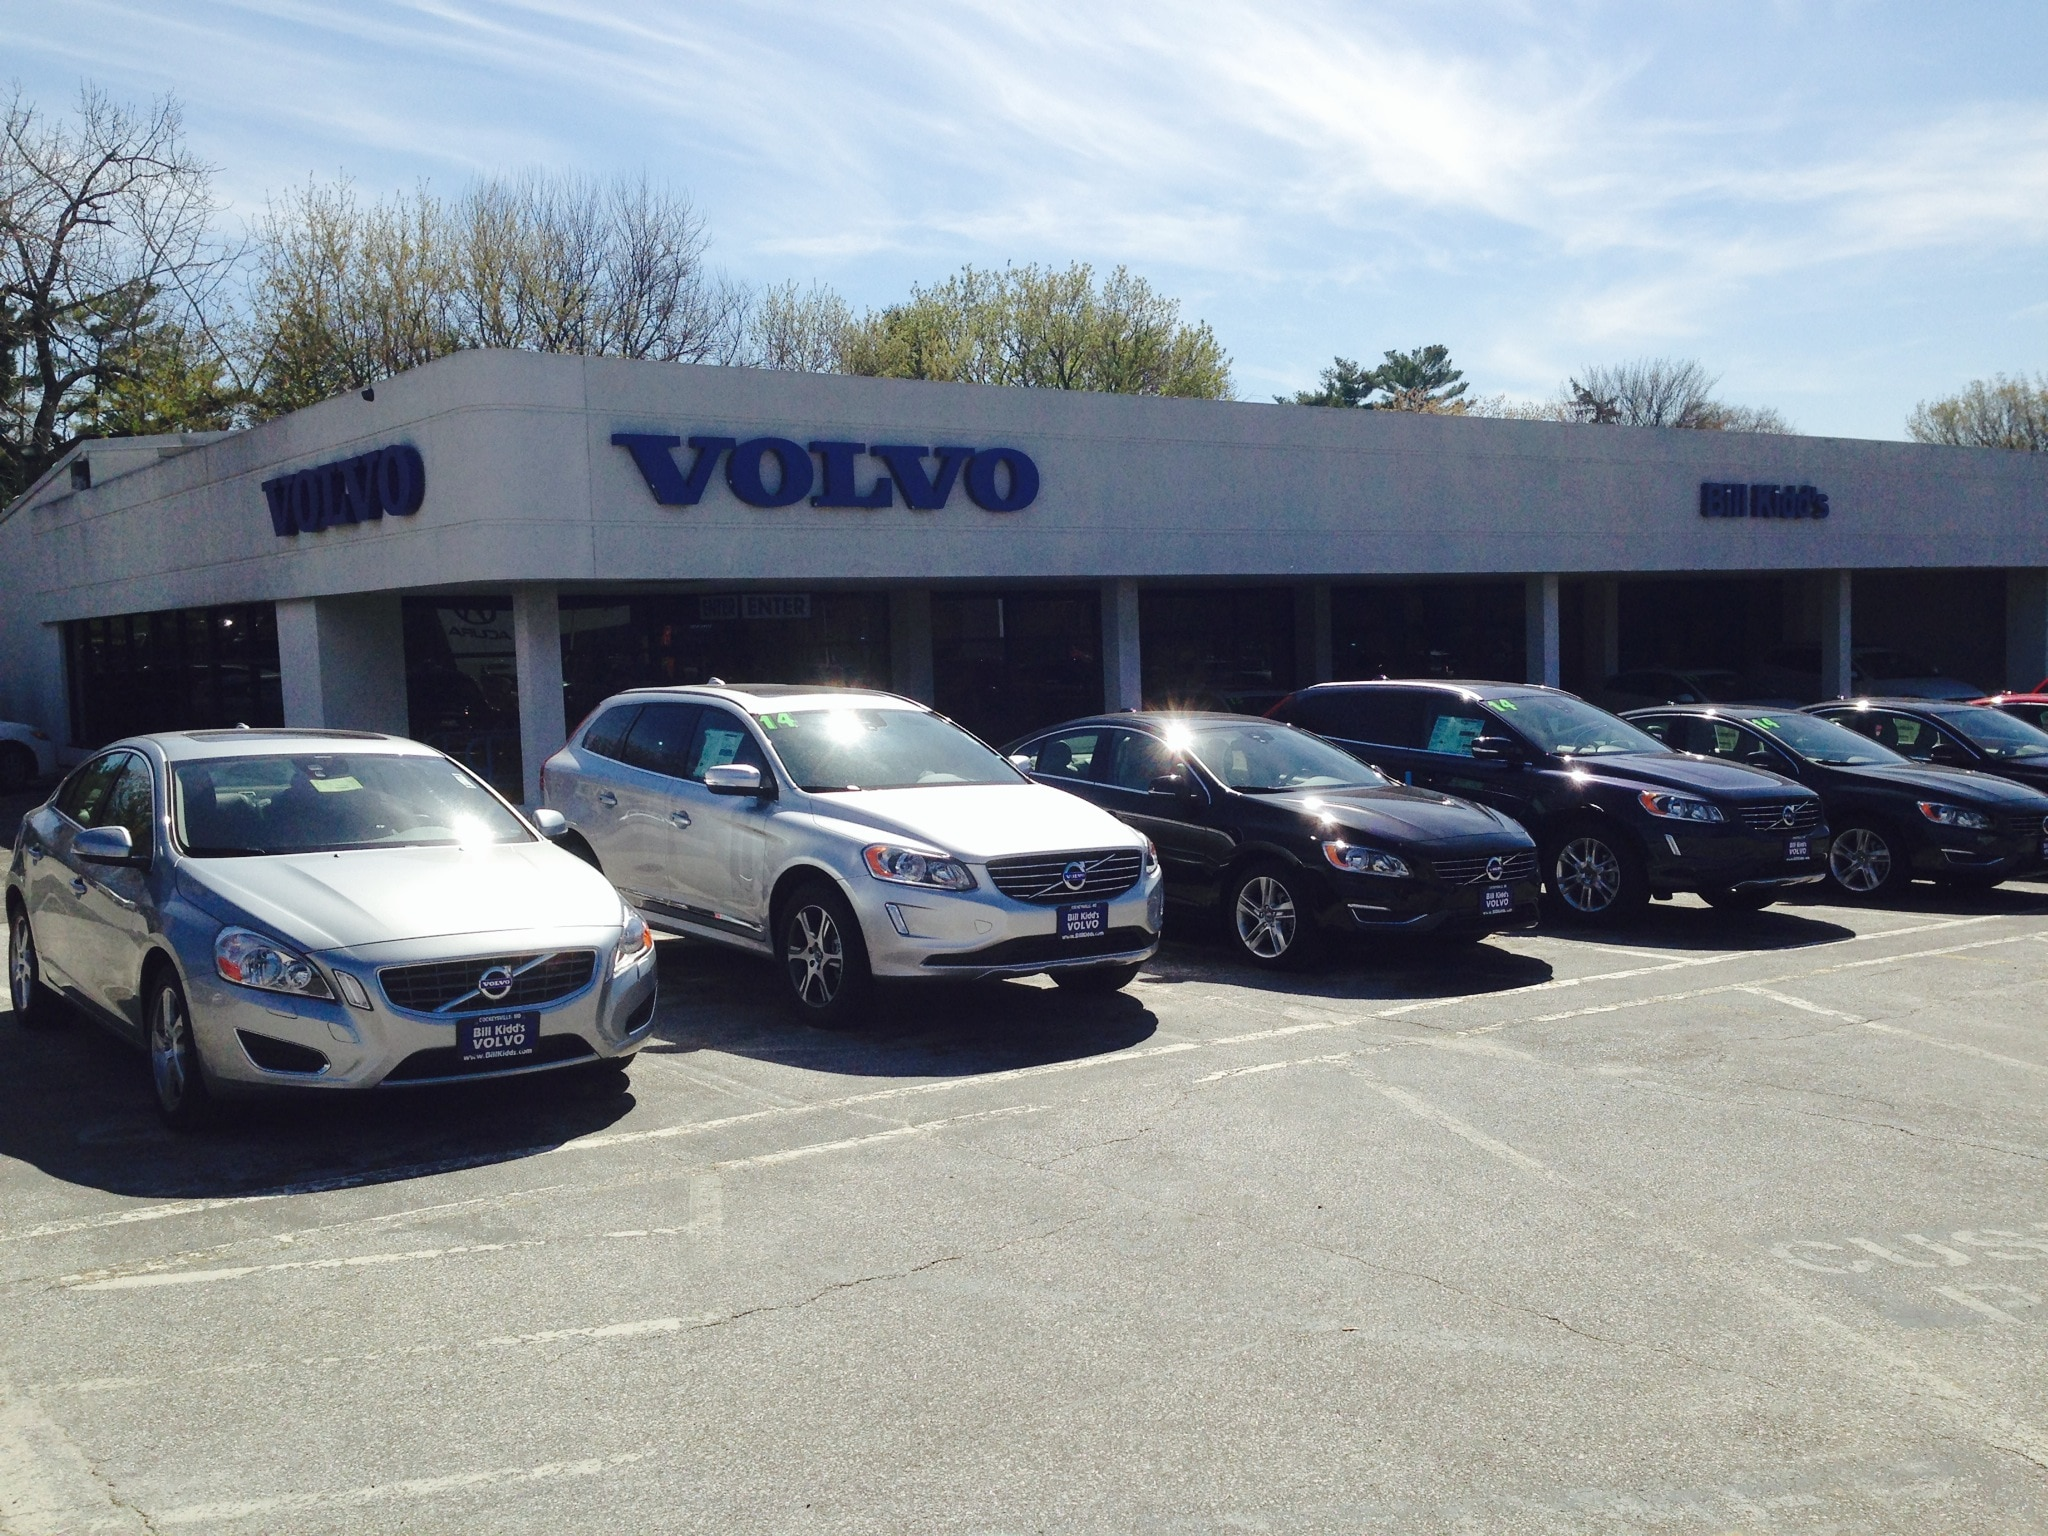 Bill Kidds Volvo >> About Bill Kidd's Volvo | New Volvo and Used Car Dealer | Serving Cockeysville, Baltimore ...